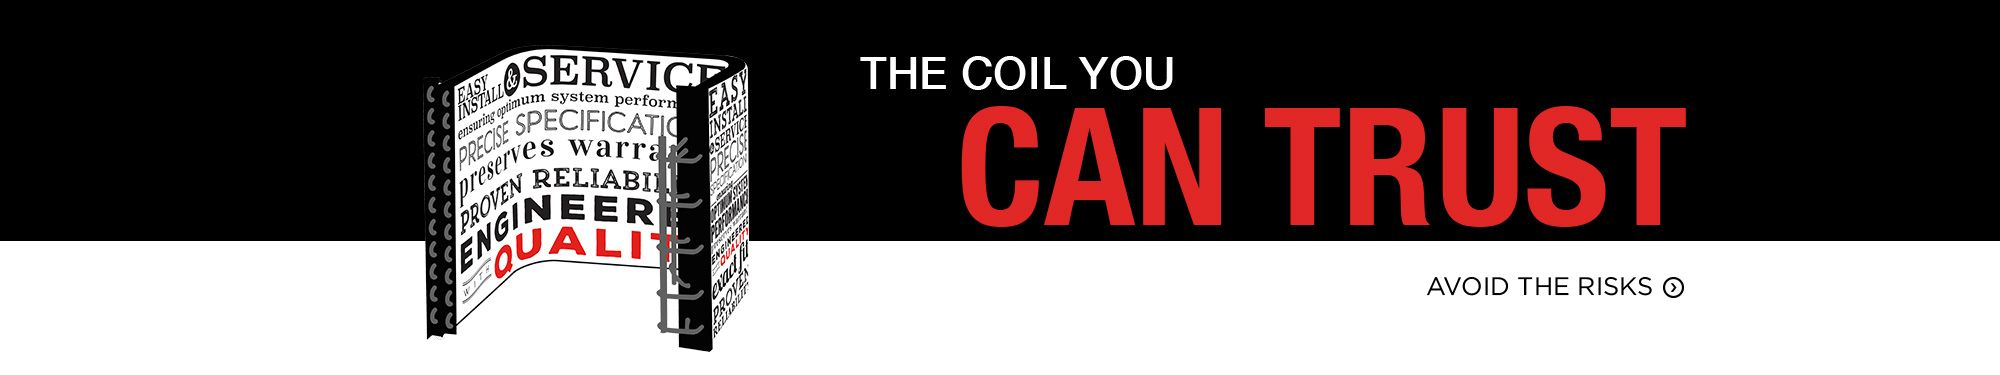 The Coil you Can Trust